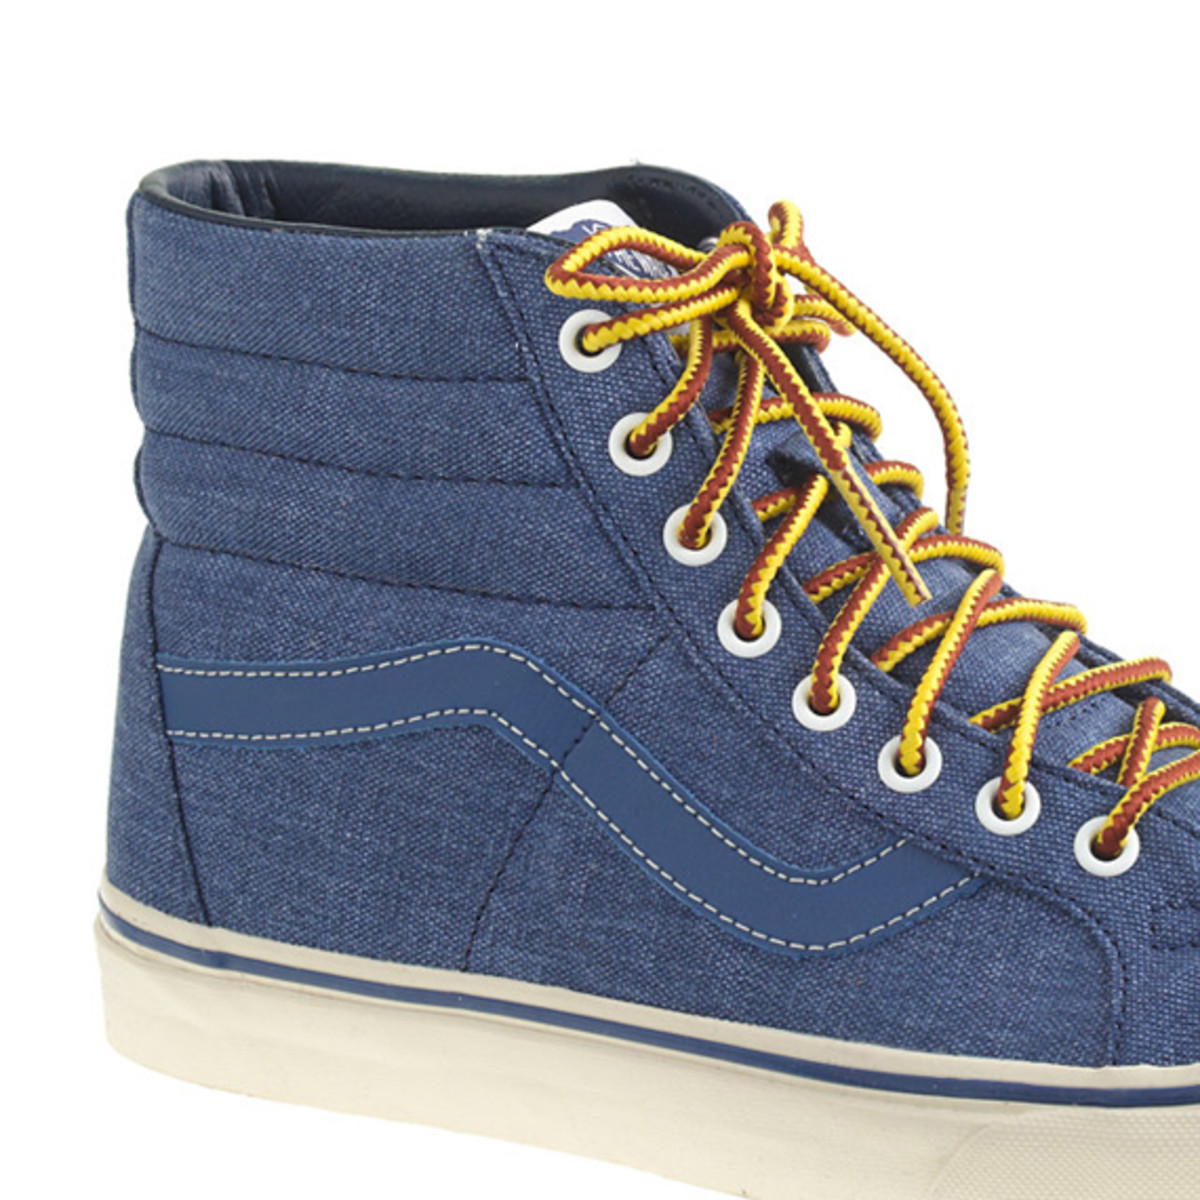 vans-for-jcrew-sk8-hi-reissue-01